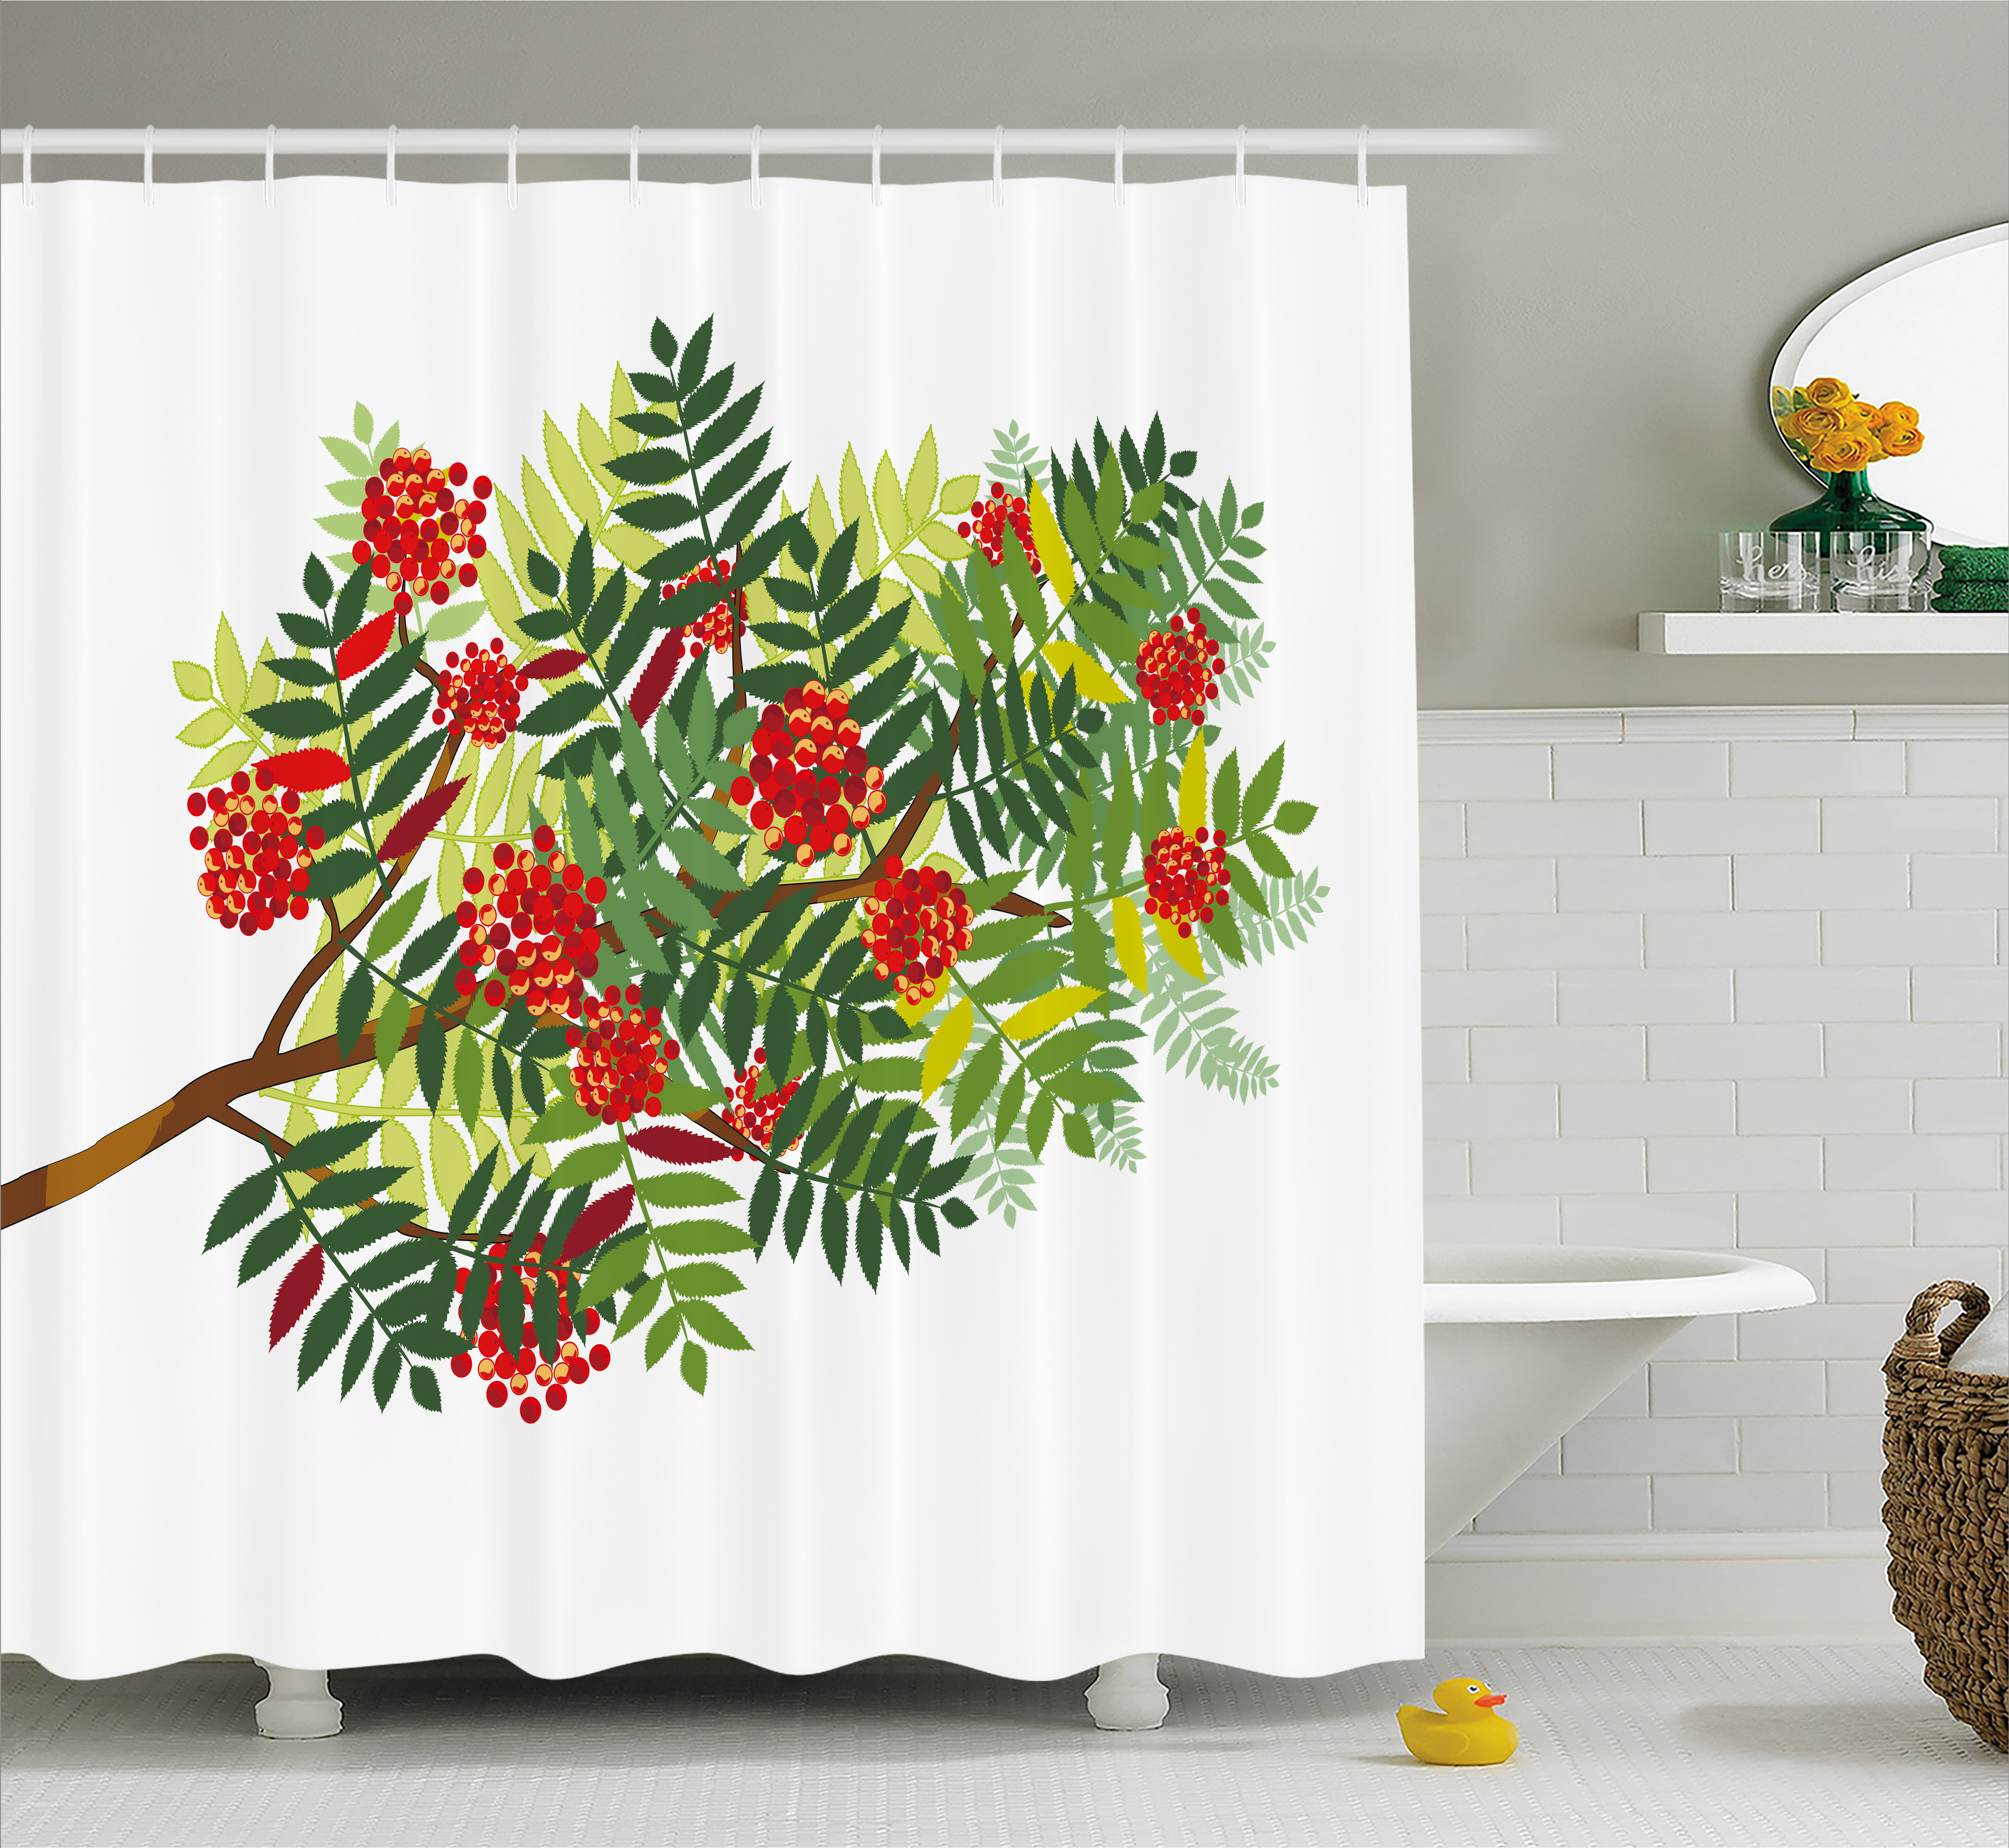 Rowan Shower Curtain Graphic Tree Branch With Green Colored Leaves And Berries Seasonal Fabric Bathroom Set With Hooks Red Dark Green Appple Green